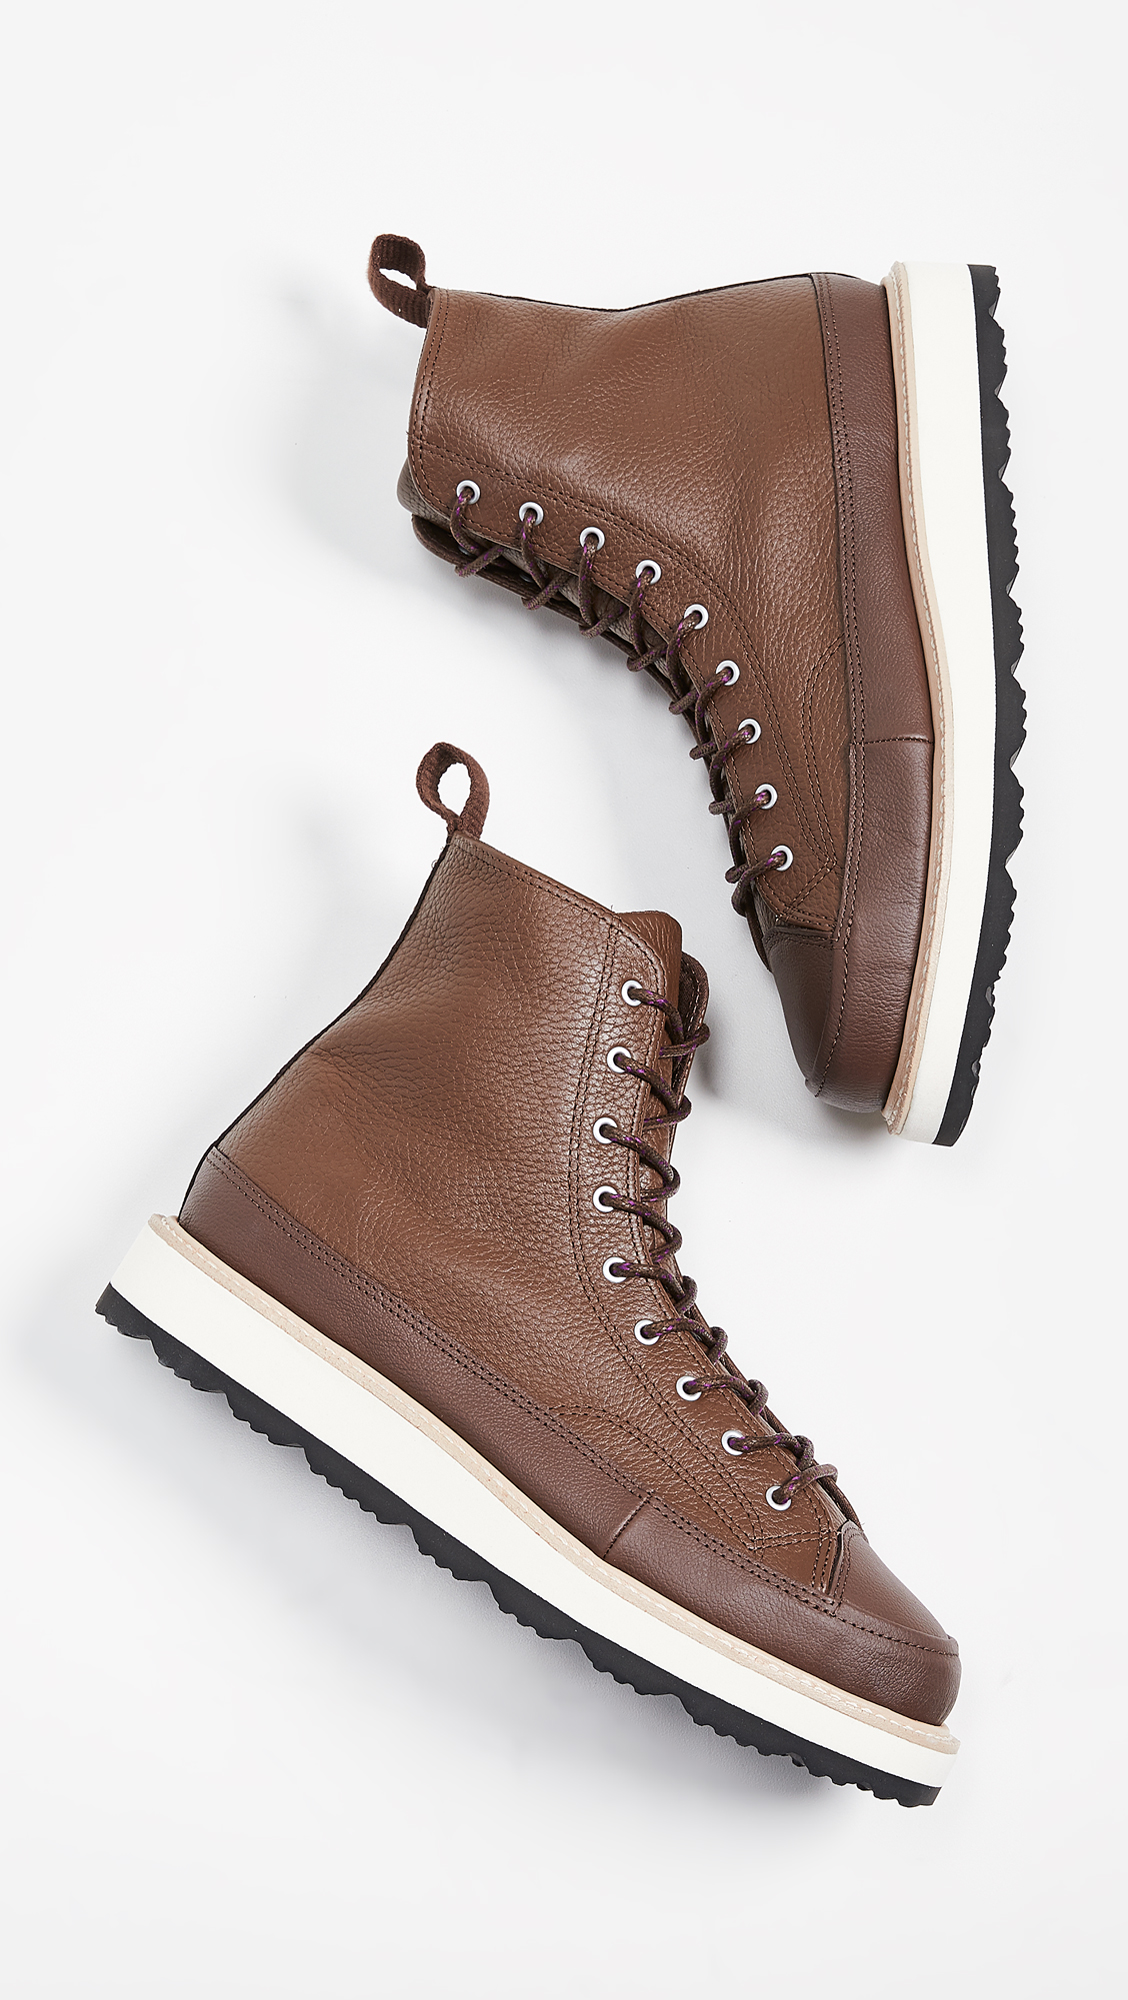 a7f35637d1c3 Converse Chuck Taylor Crafted Boots